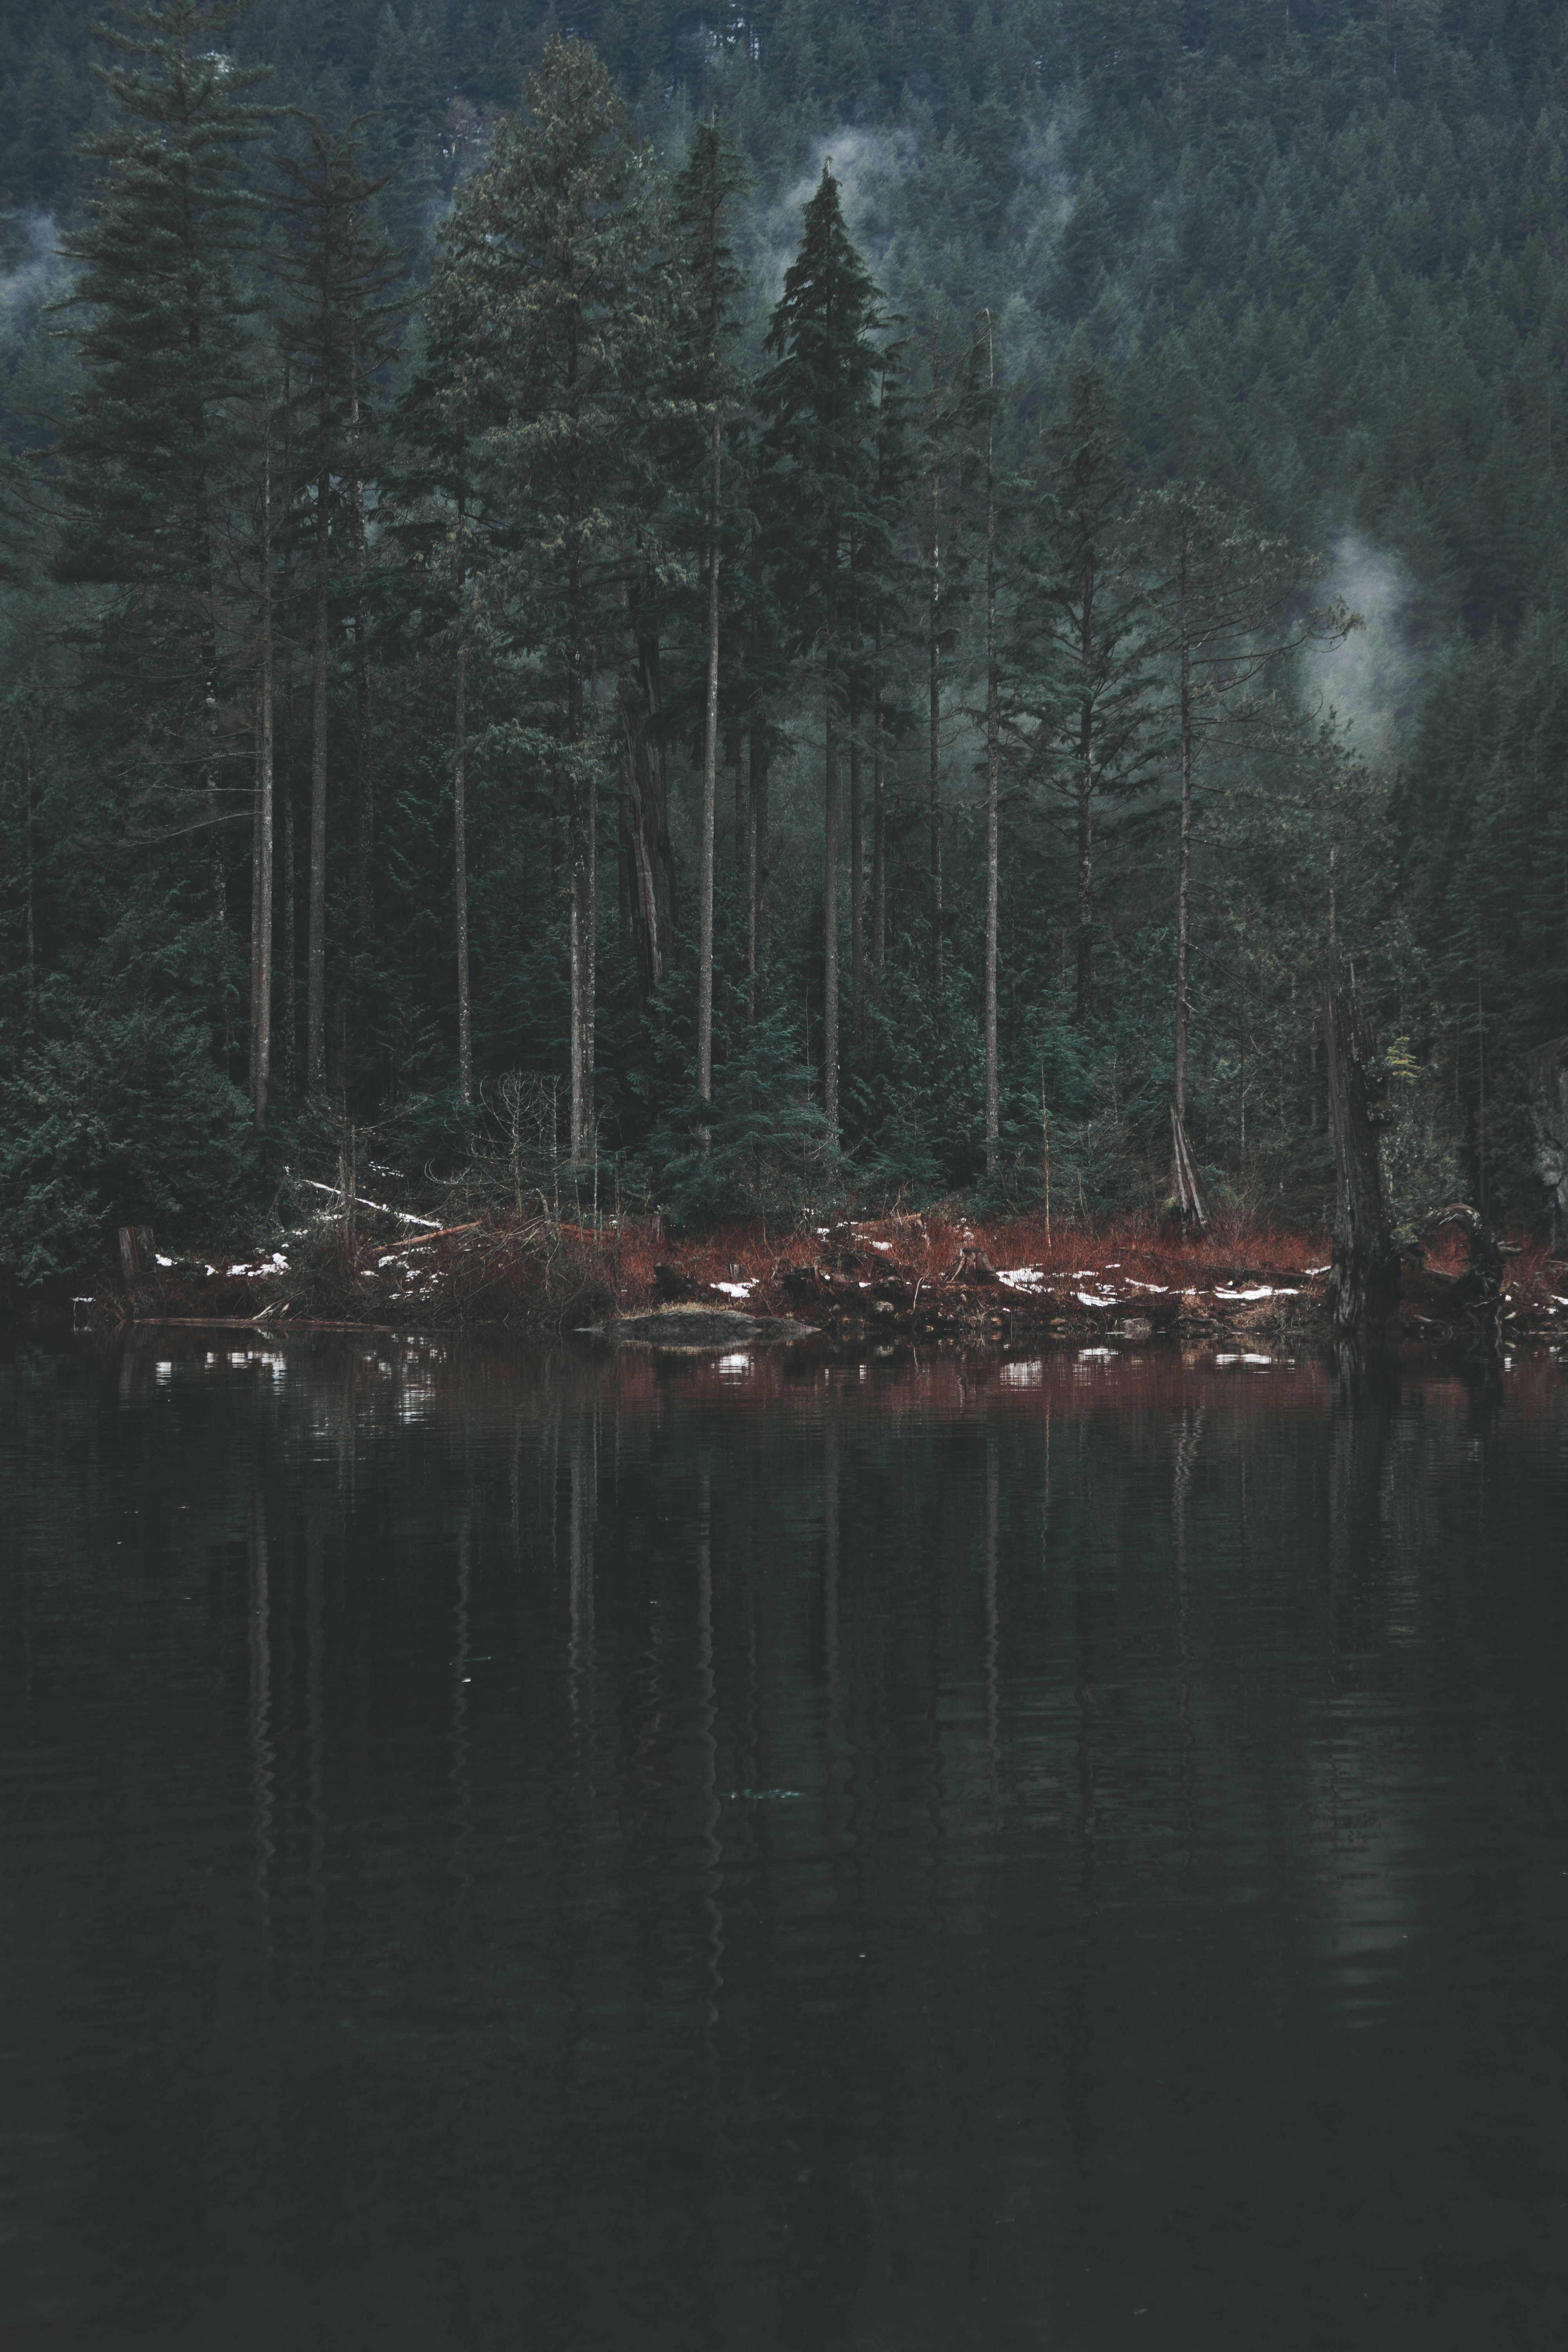 forest and lake during daytime in landscape photography